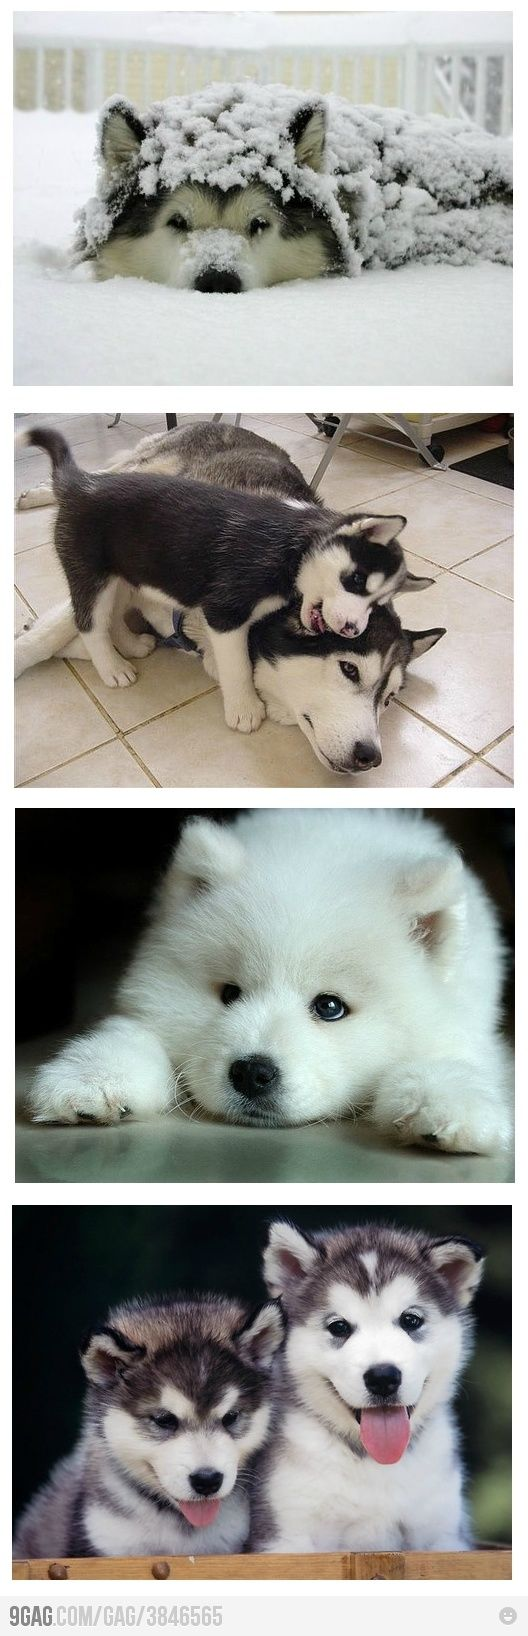 AWWWW........ IV'E ALWAYS WANTED A HUSKEY!! THEY SOOOOO ADORABLE AND PROTECTIVE!! <3